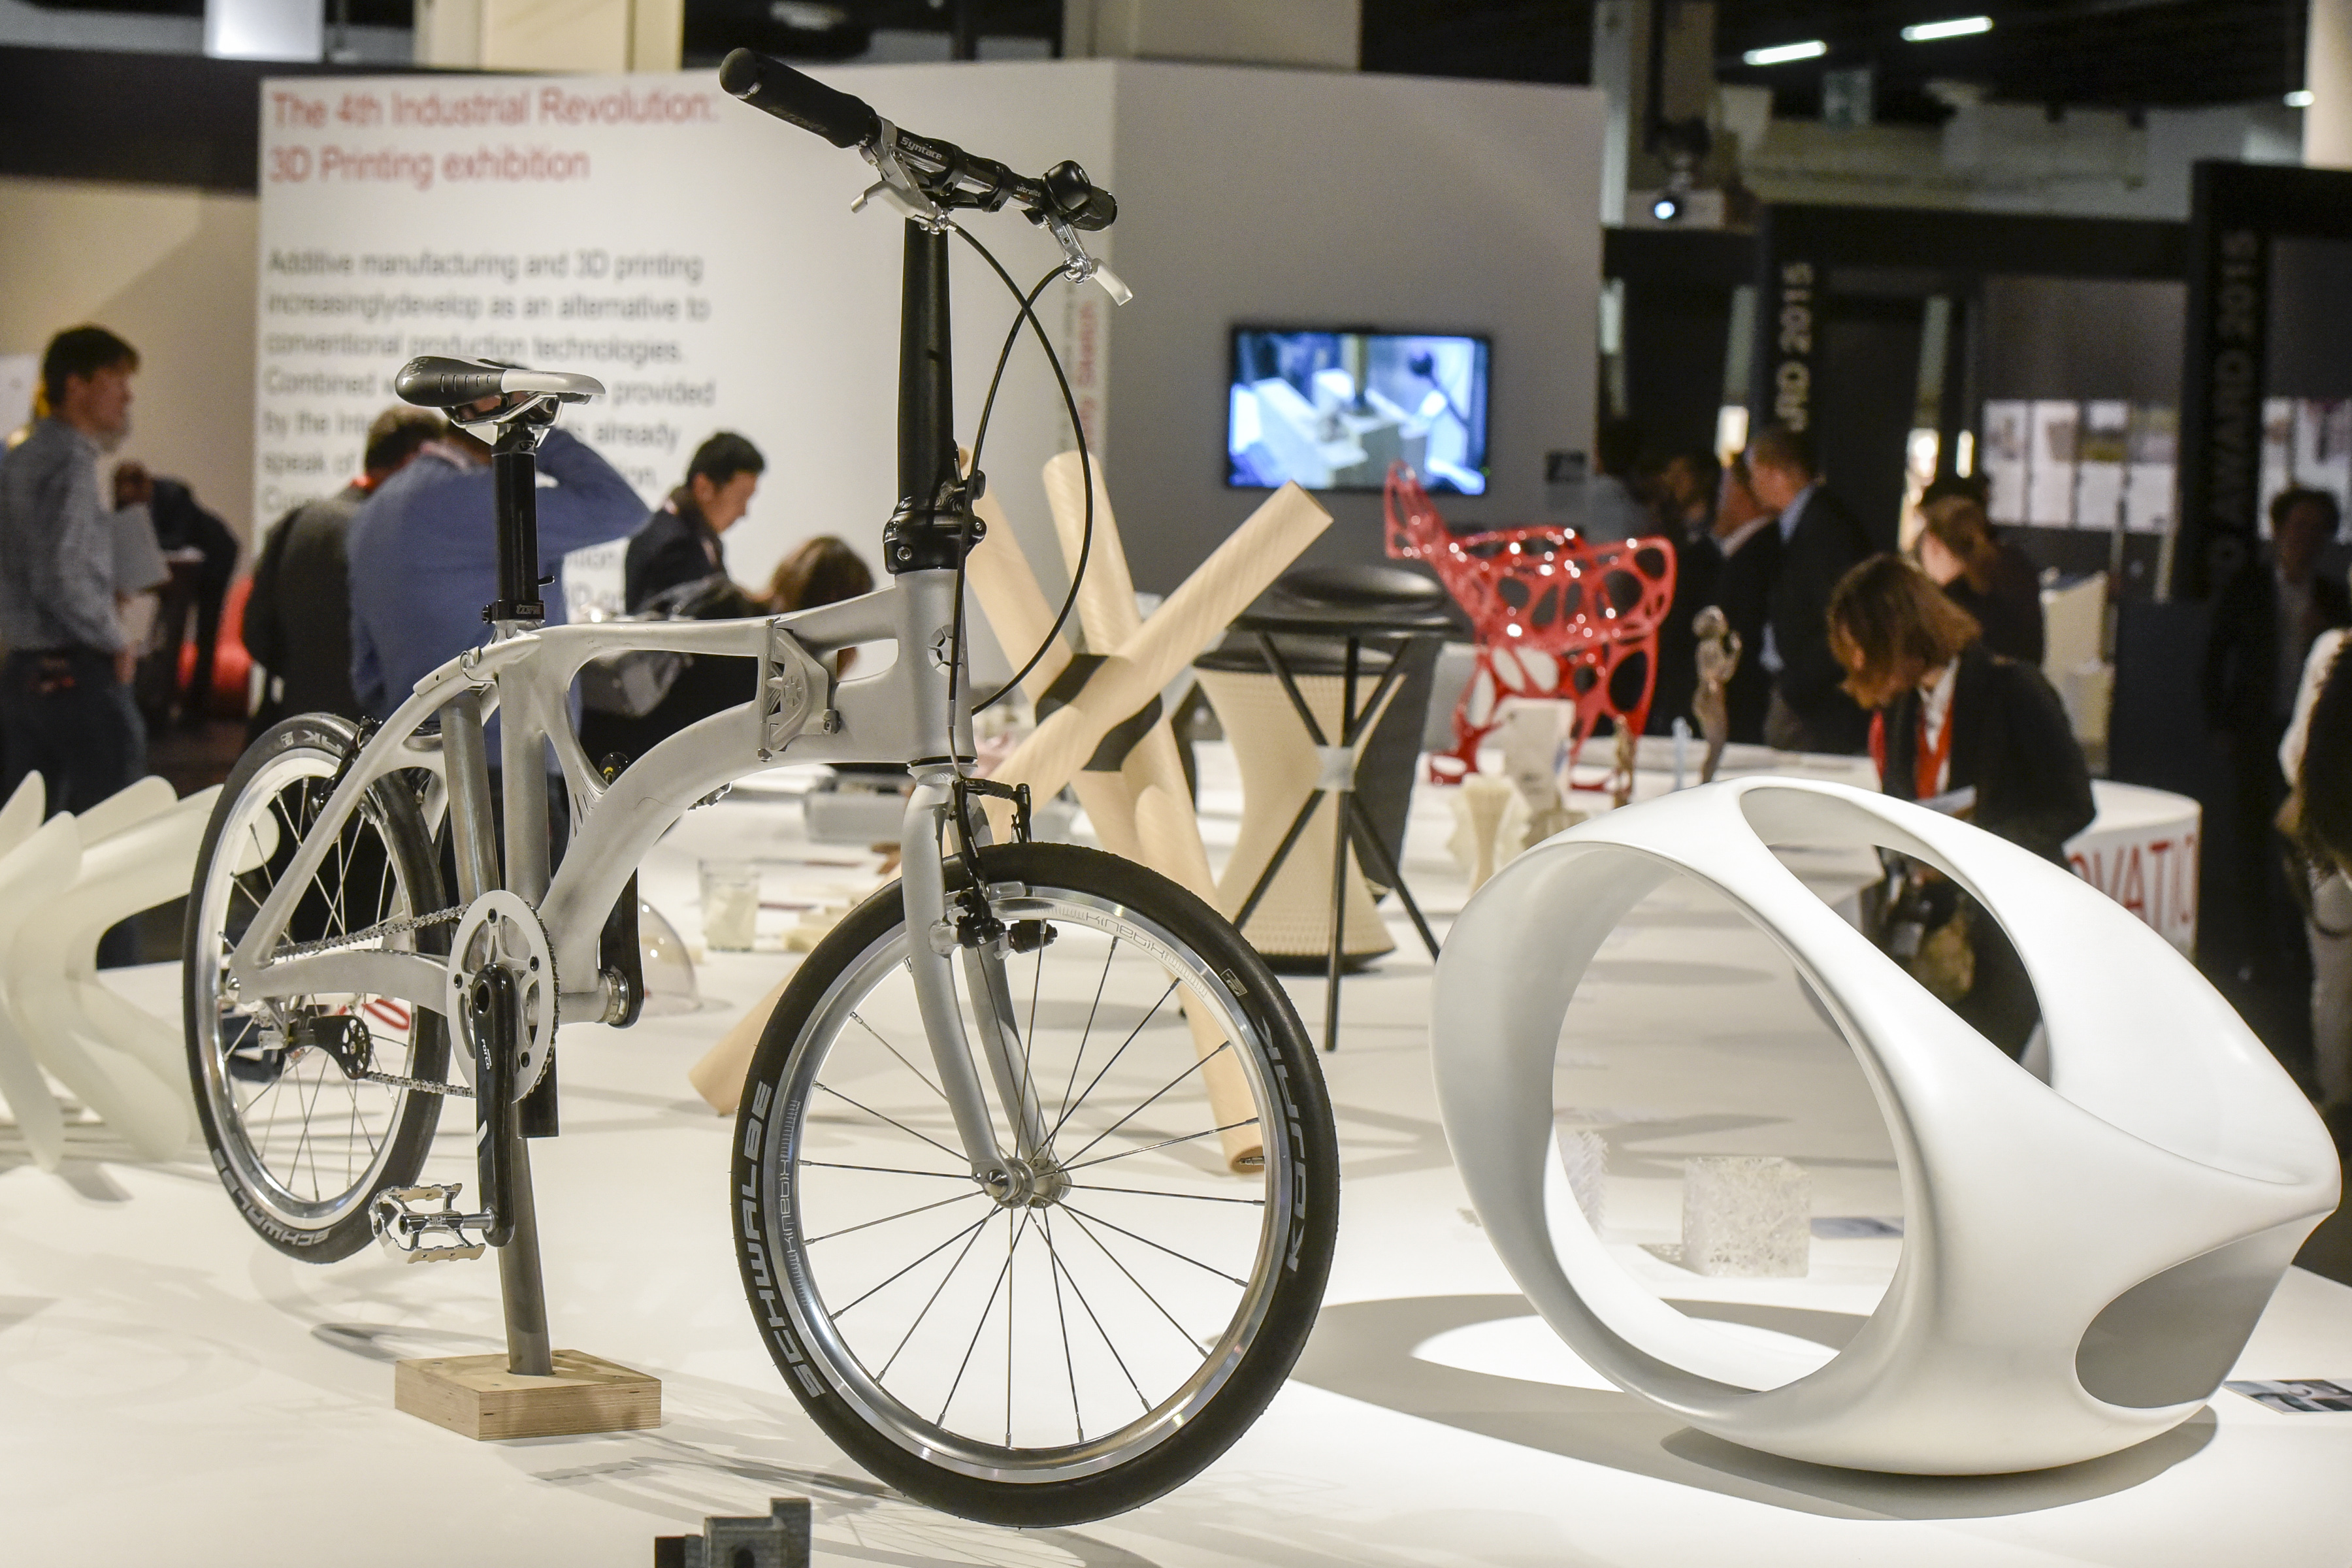 Innovation of Interior, 3D Printing, Halle 4.2